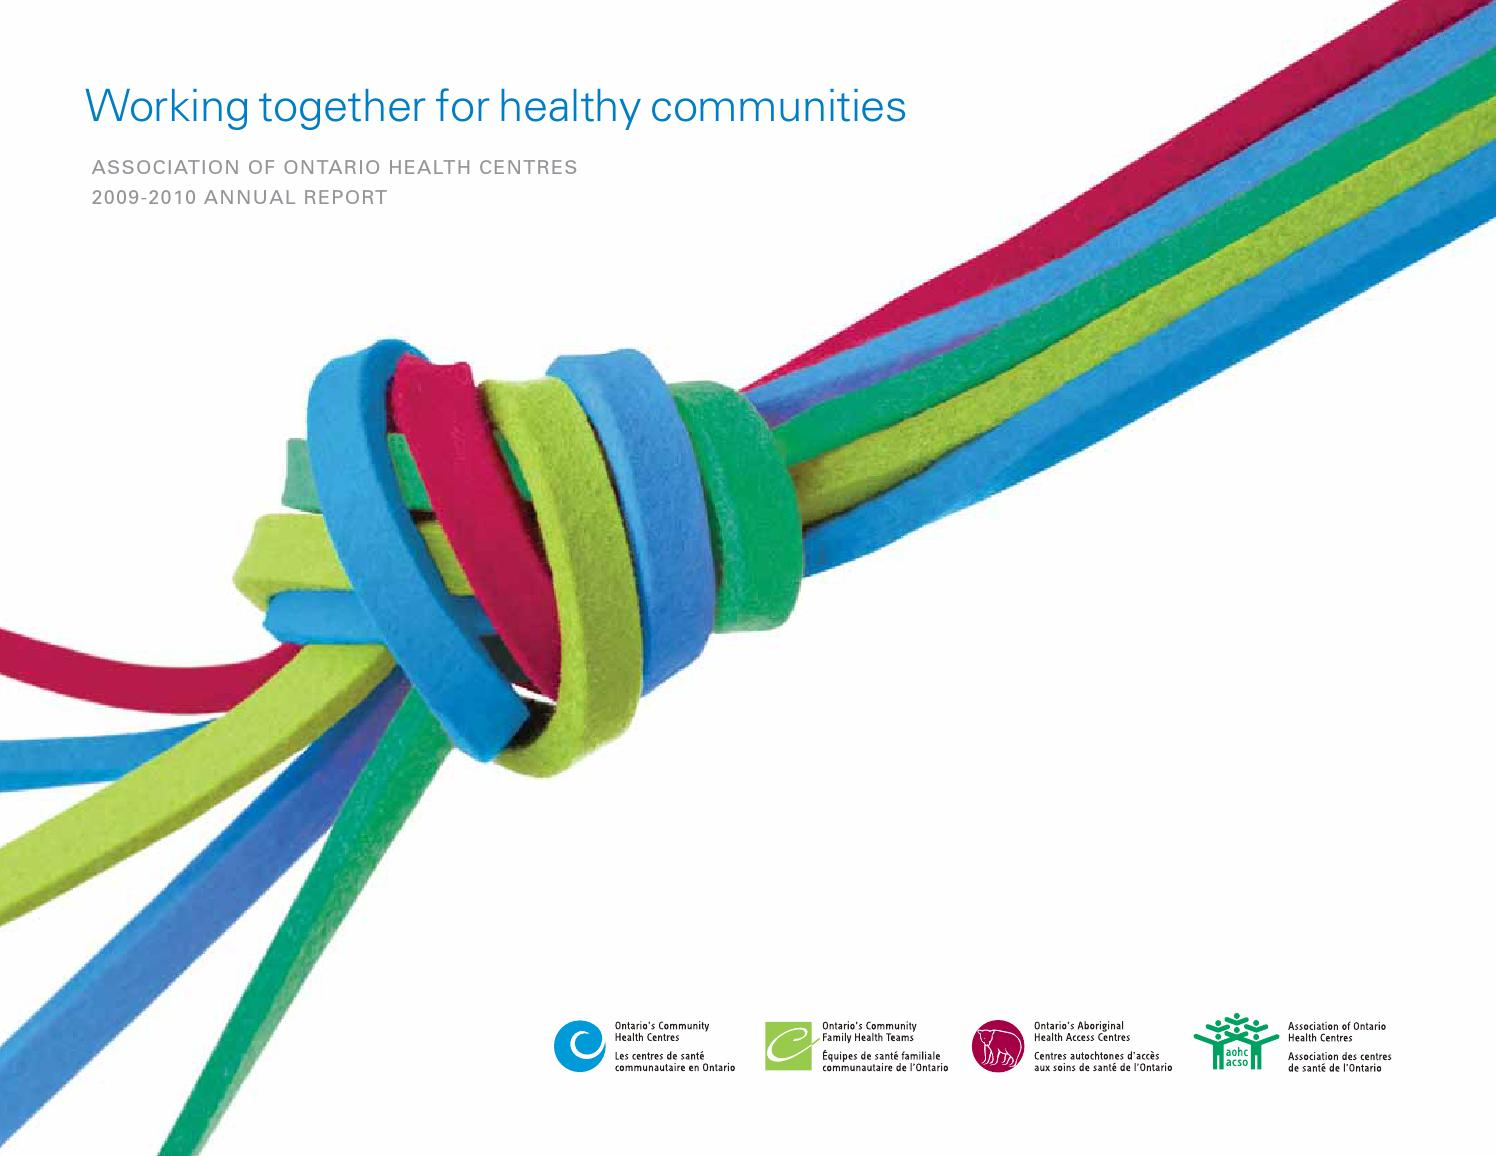 Aohc annual report 2009 10 by Alliance for Healthier